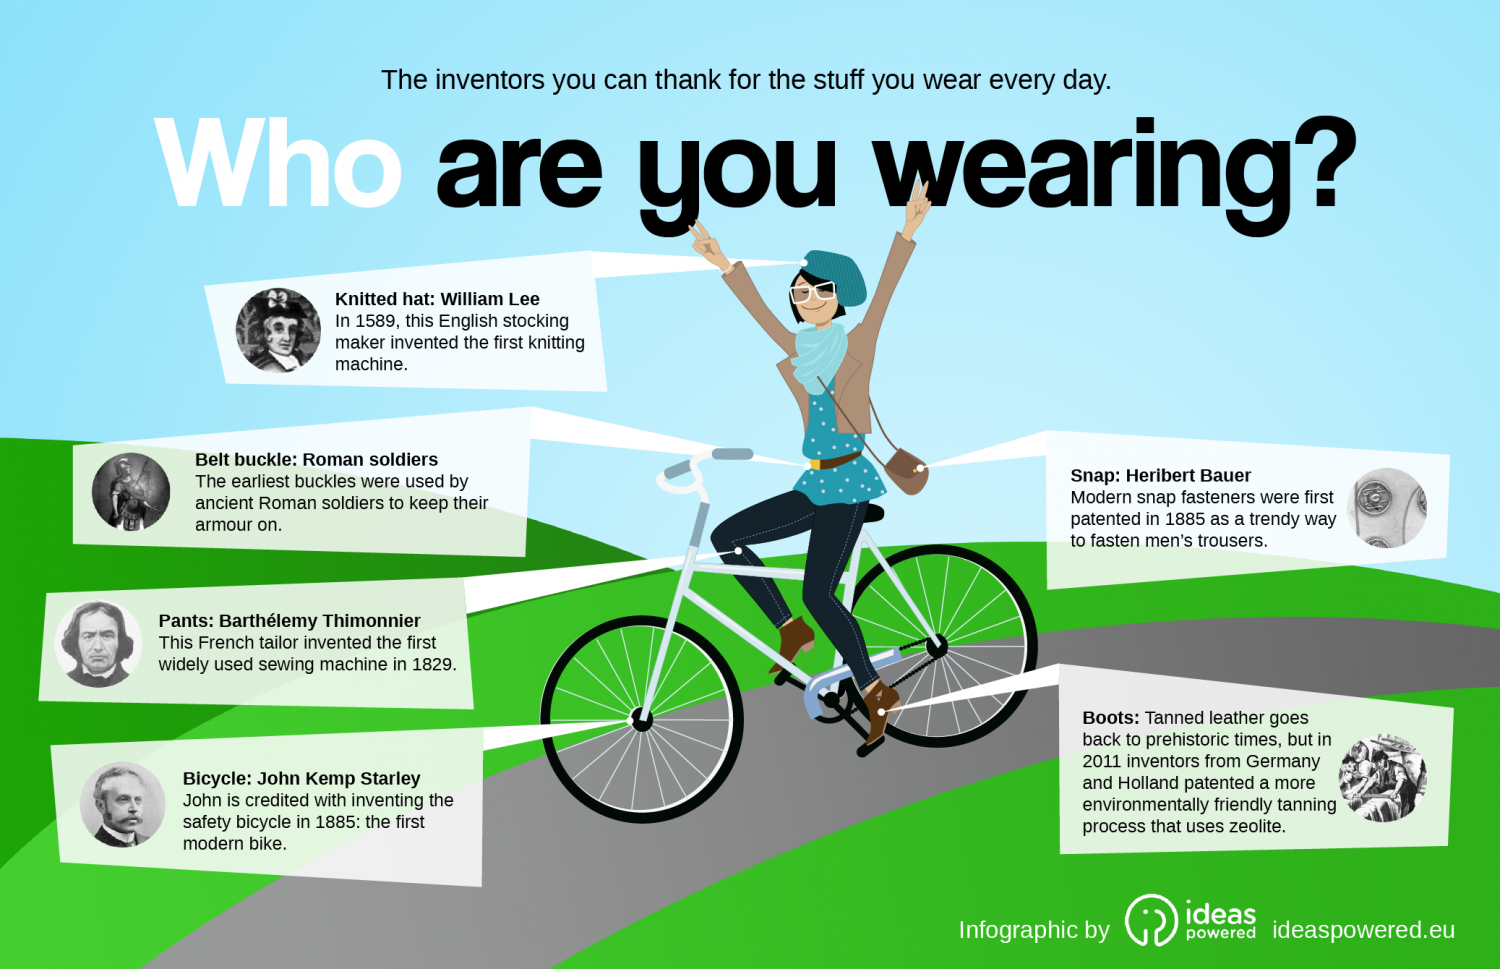 WHO are you wearing? Infographic